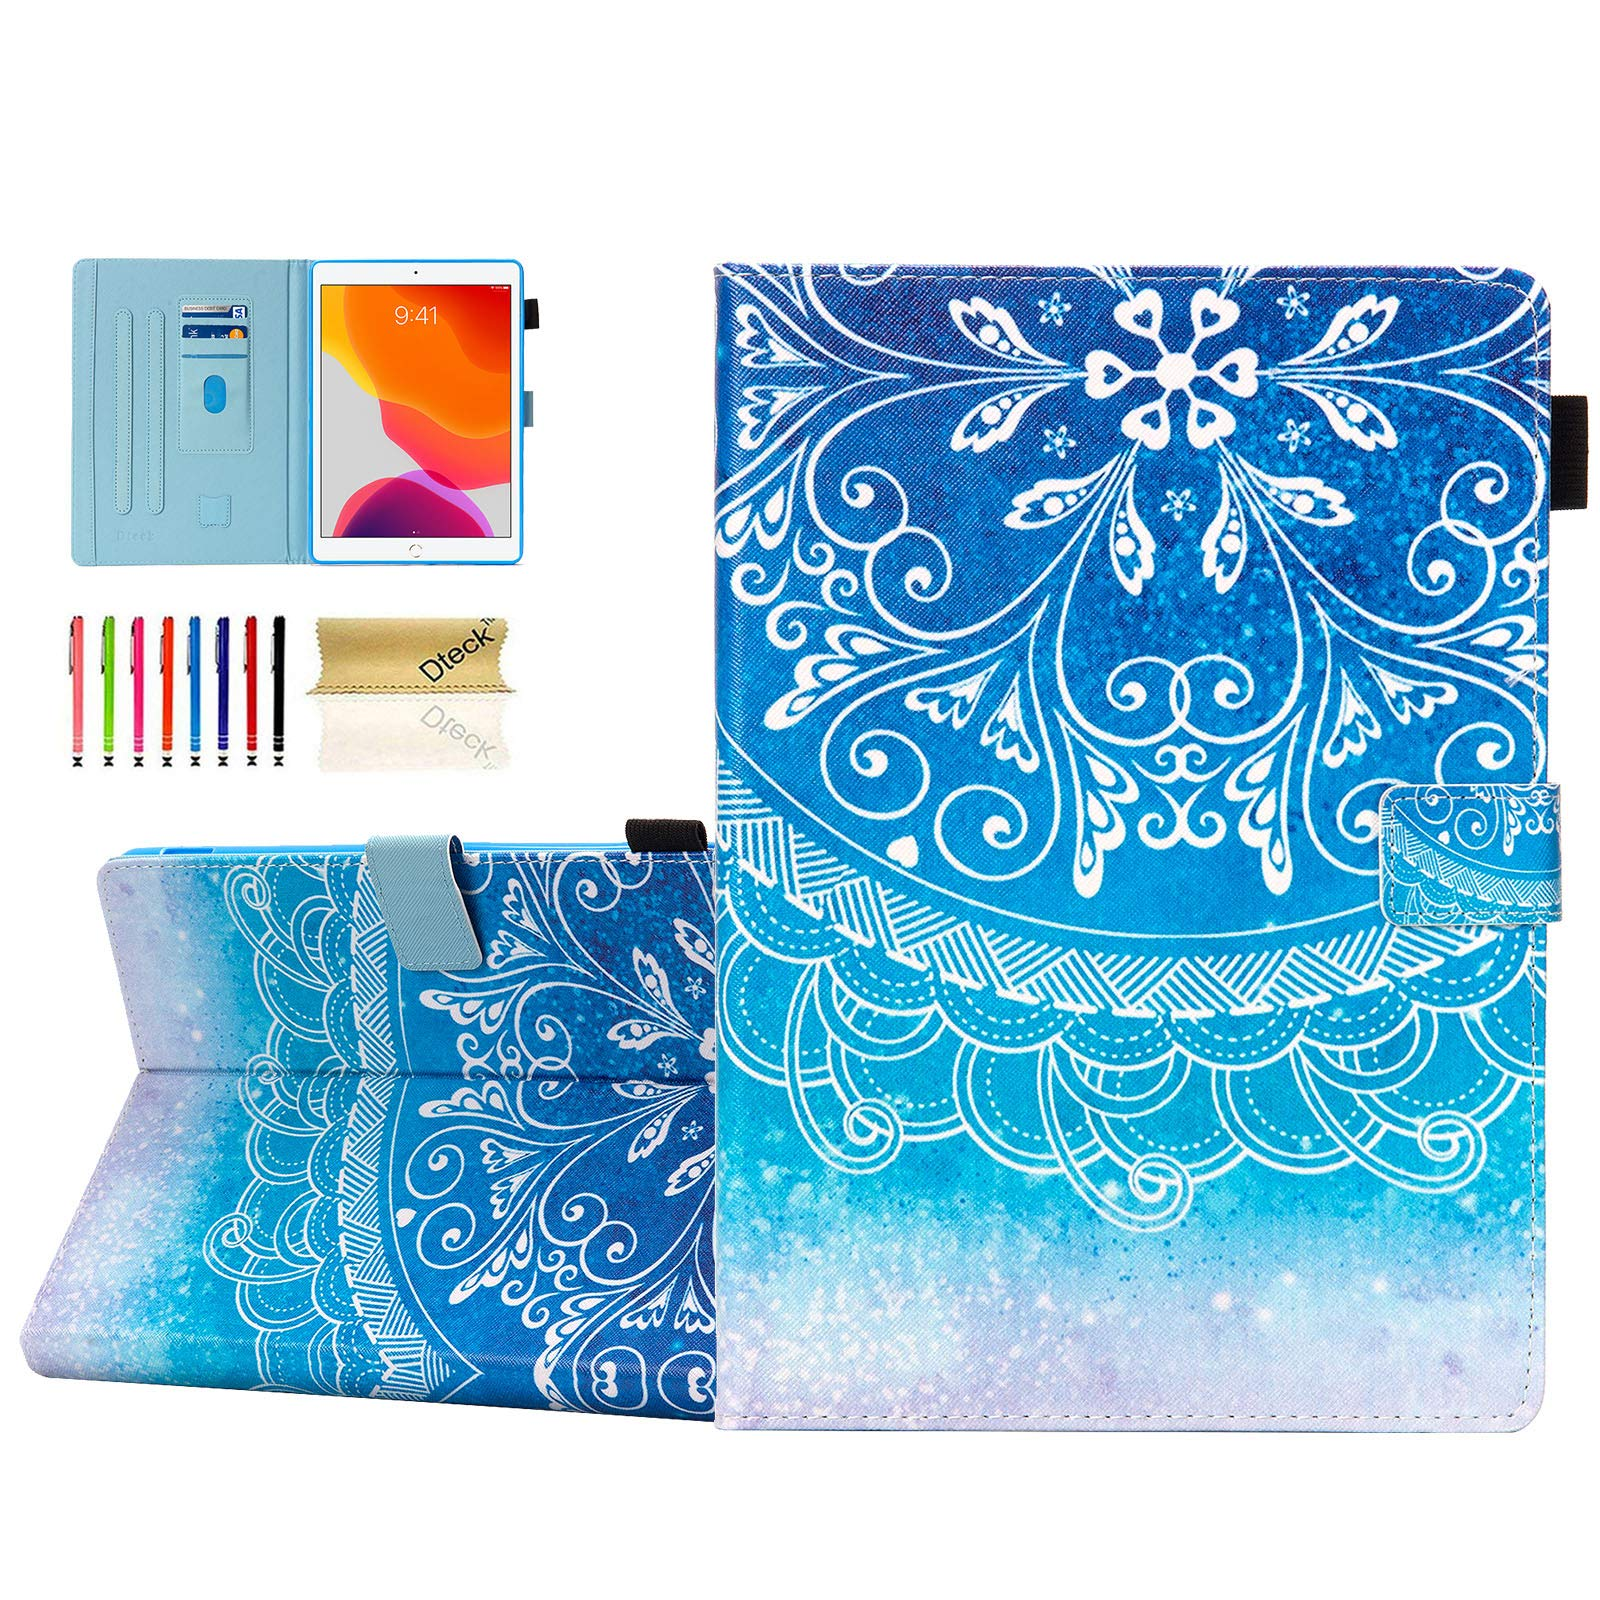 Dteck Case for iPad 10.2 2019 7th Generation - Slim Fit Premium PU Leather Folio Stand Smart Soft Protective Cover with Pencil Holder, Auto Wake/Sleep and Wallet Pocket, Blue Mandala